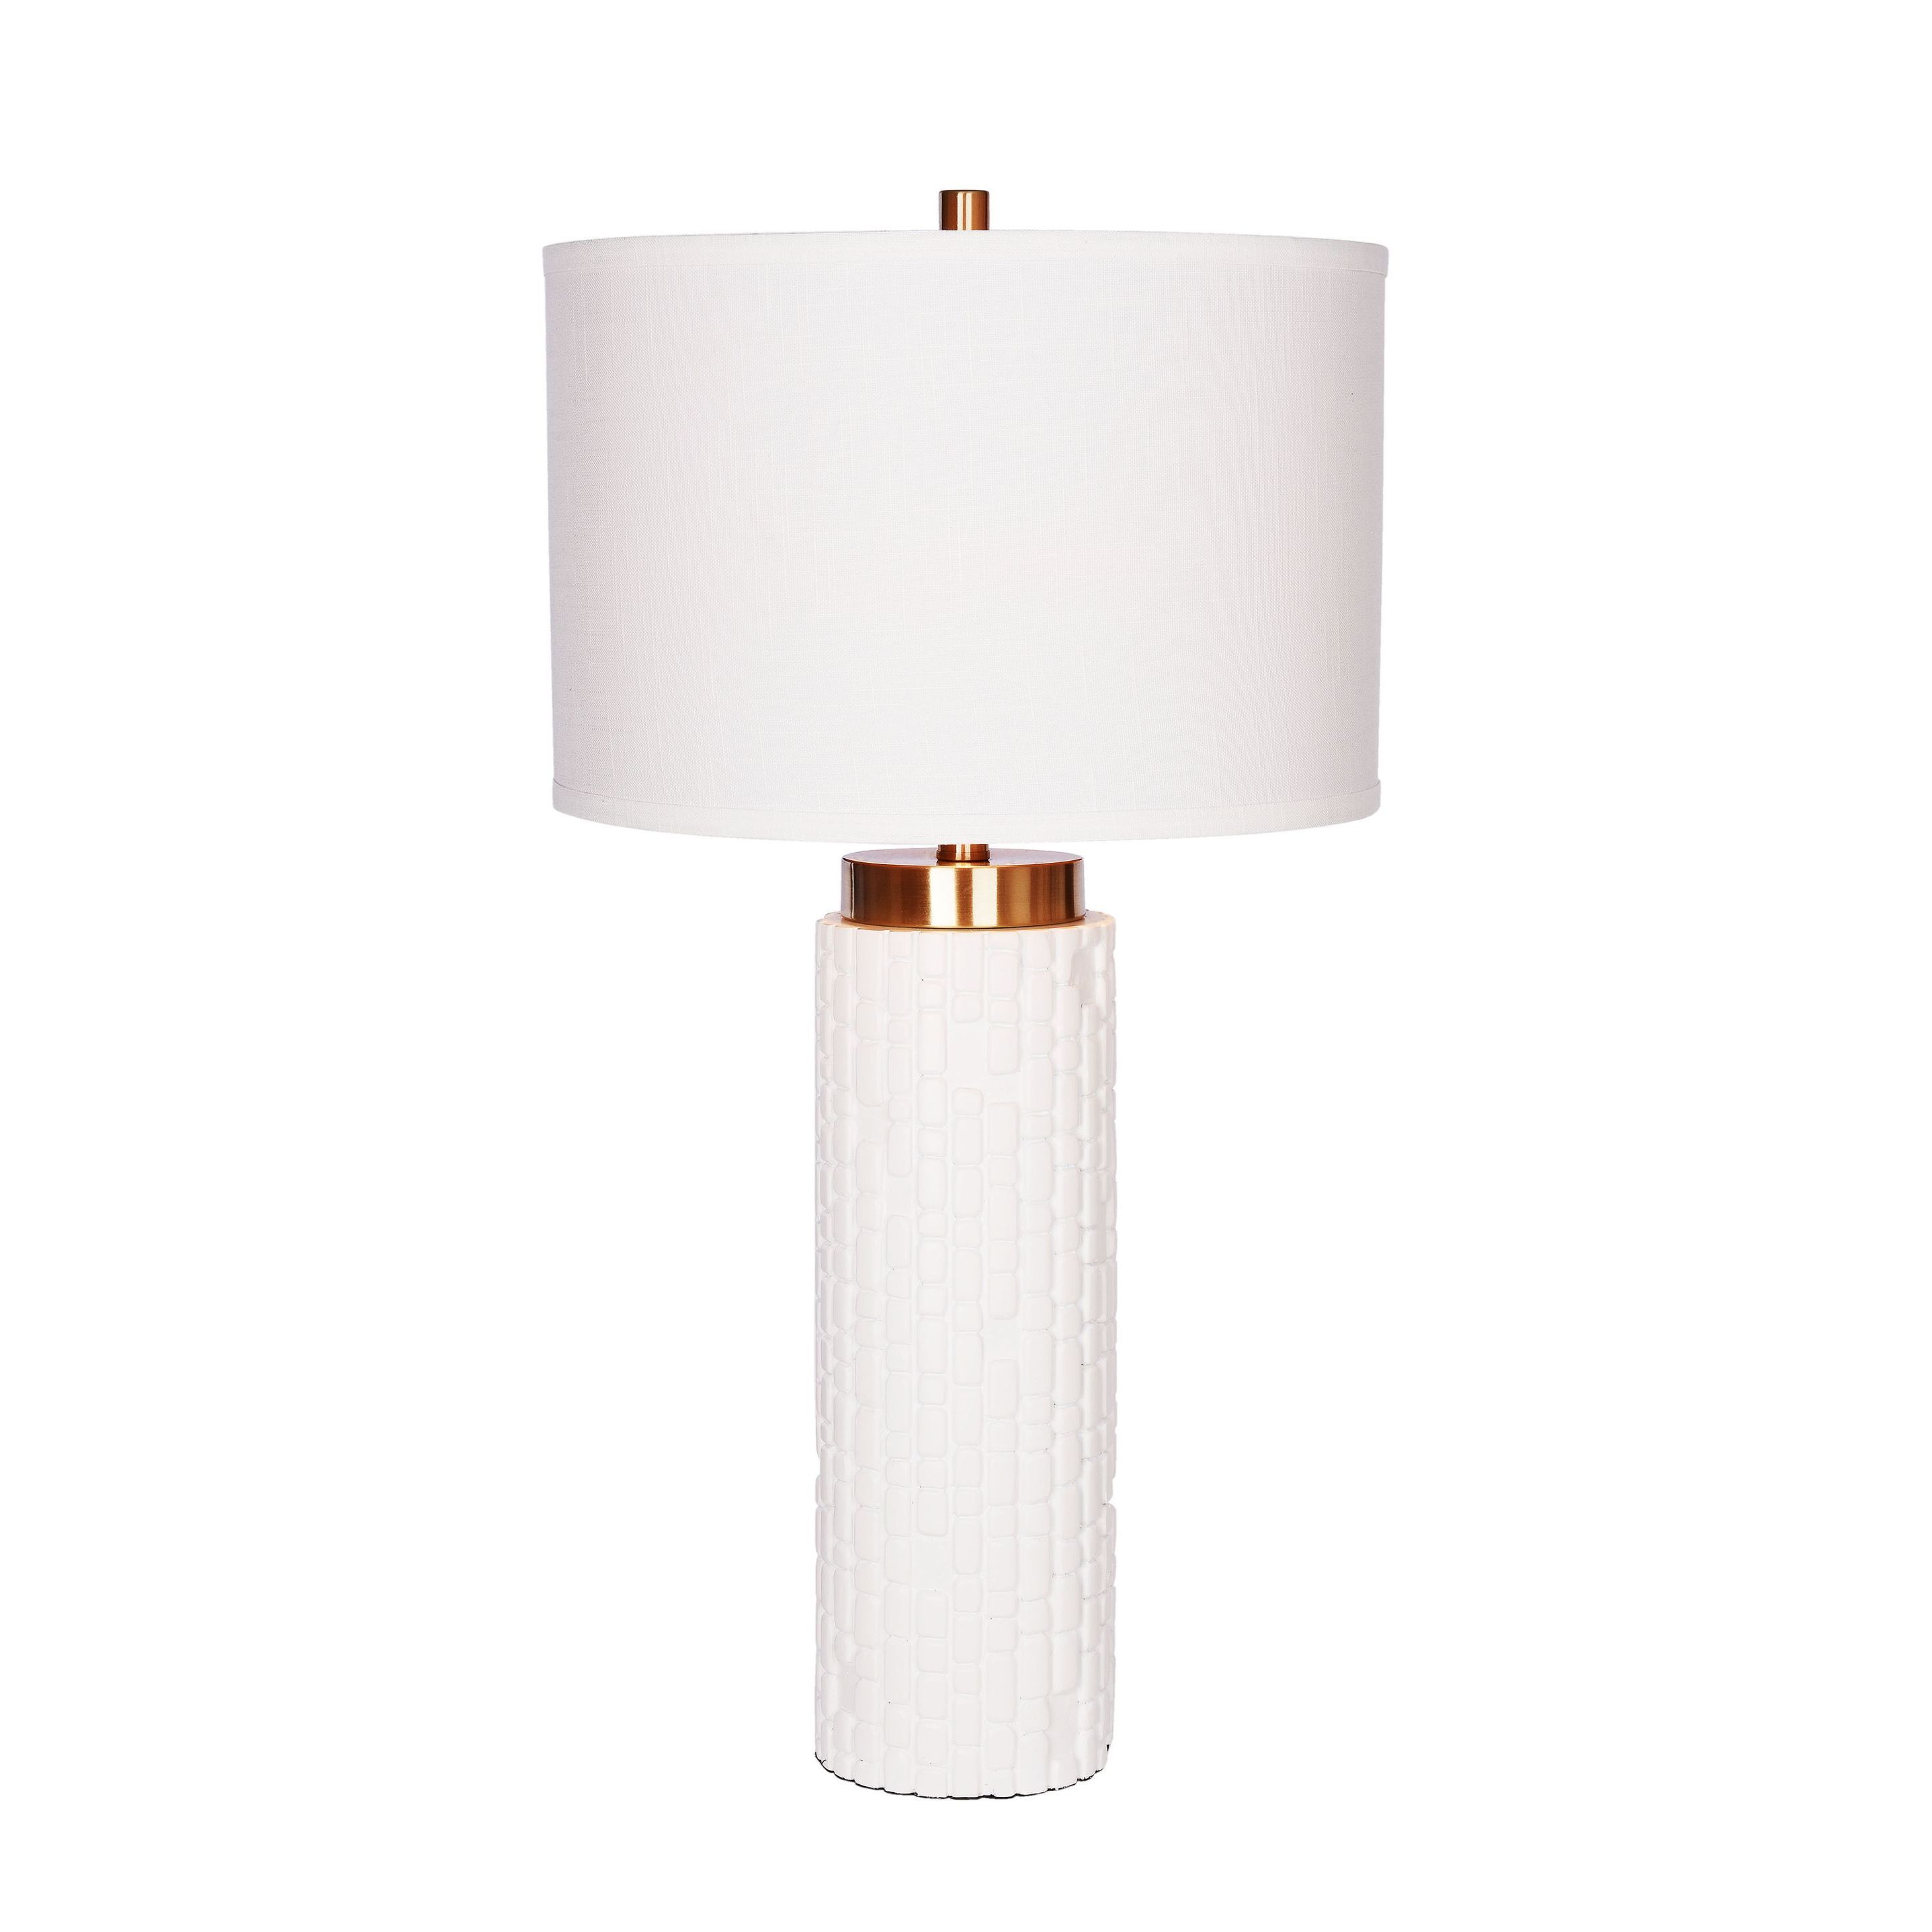 Oliver & James Weygold White Resin and Brass Embossed Table Lamp